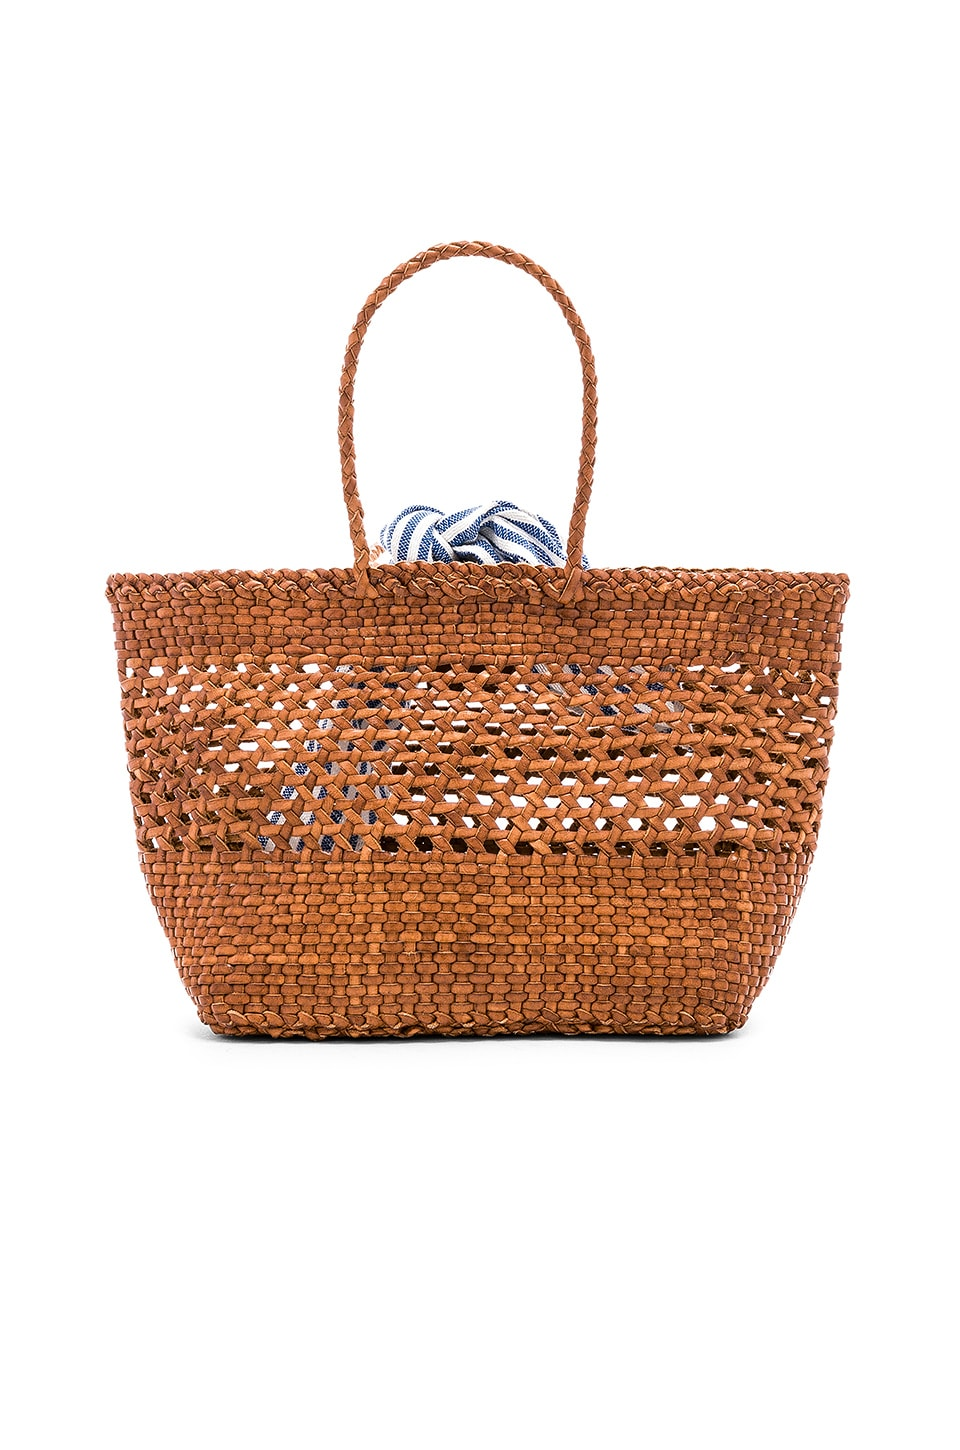 Edith Woven Leather Mini Tote in Brown Loeffler Randall UUezLSue